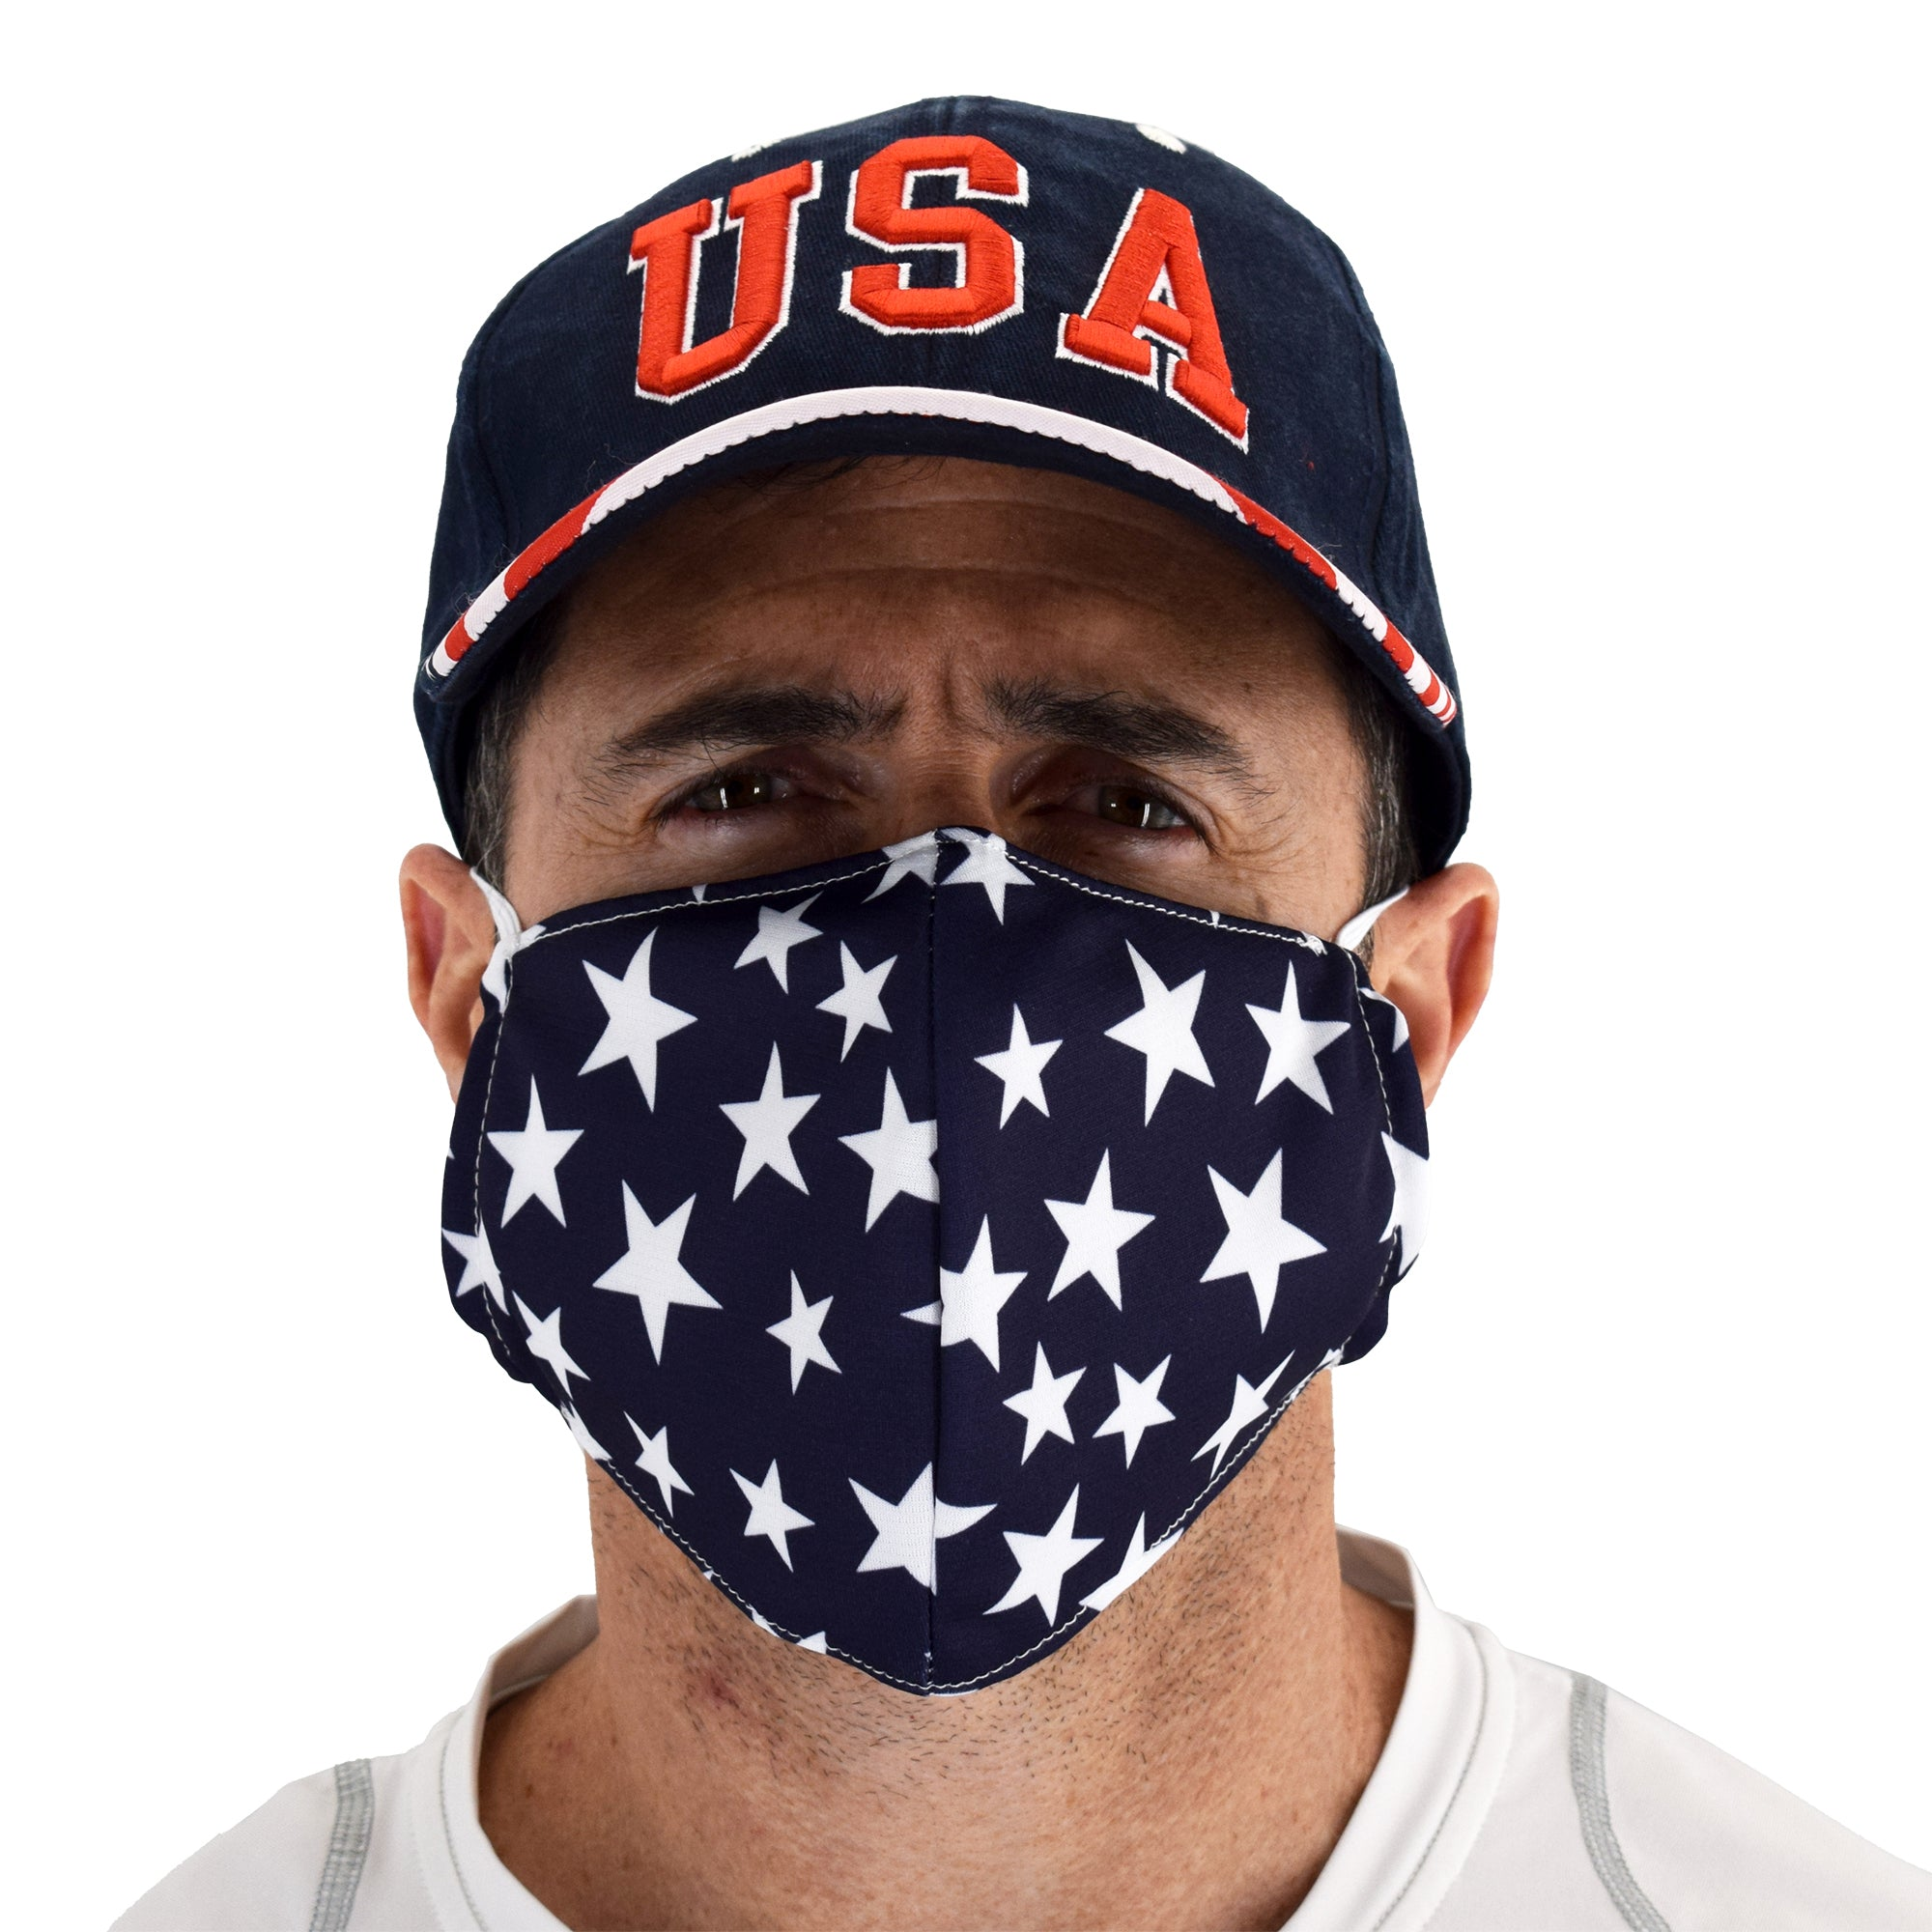 stars face covering - the flag shirt